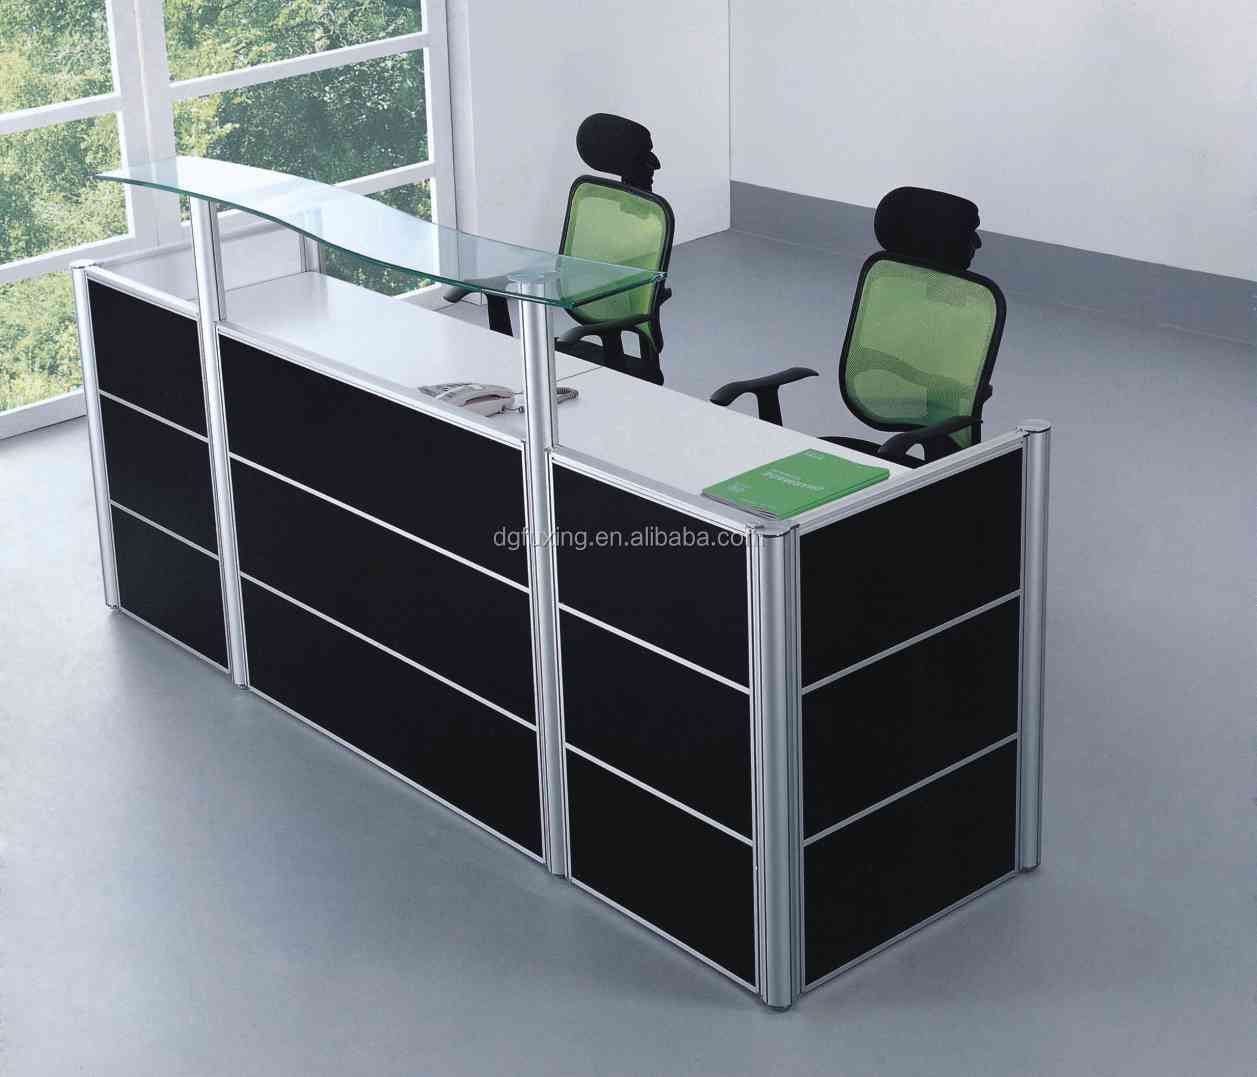 Swell Office Furniture Shop Counter Design Front Desk Office Table Buy Largest Home Design Picture Inspirations Pitcheantrous